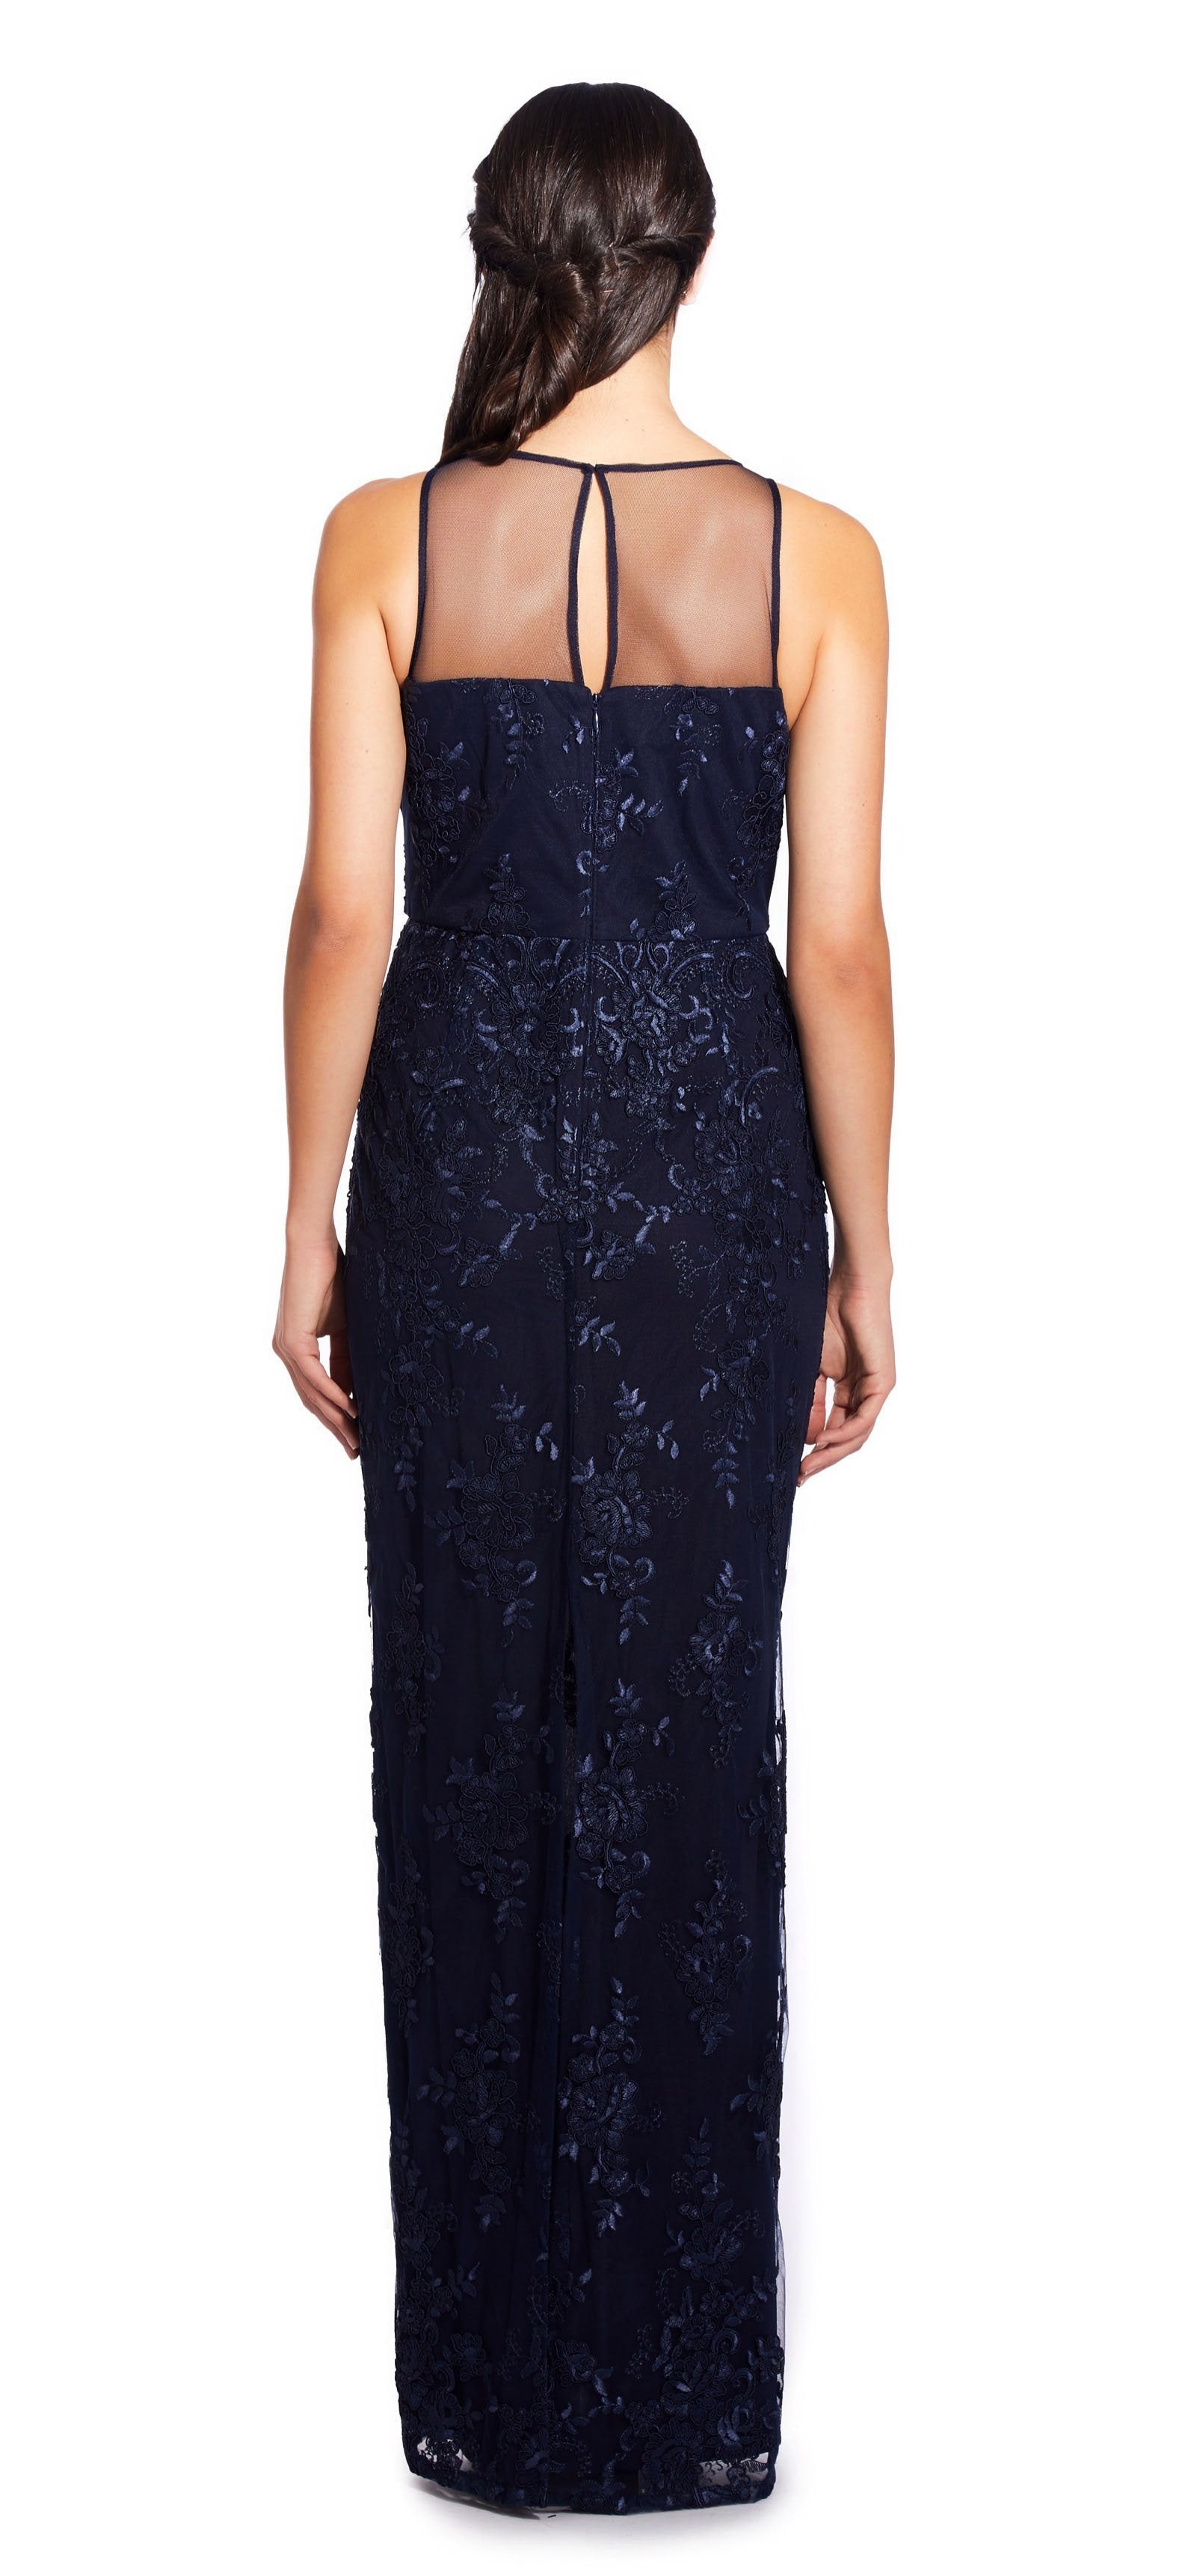 Adrianna Papell - AP1E204699 Embroidered Illusion Sheath Dress In Blue